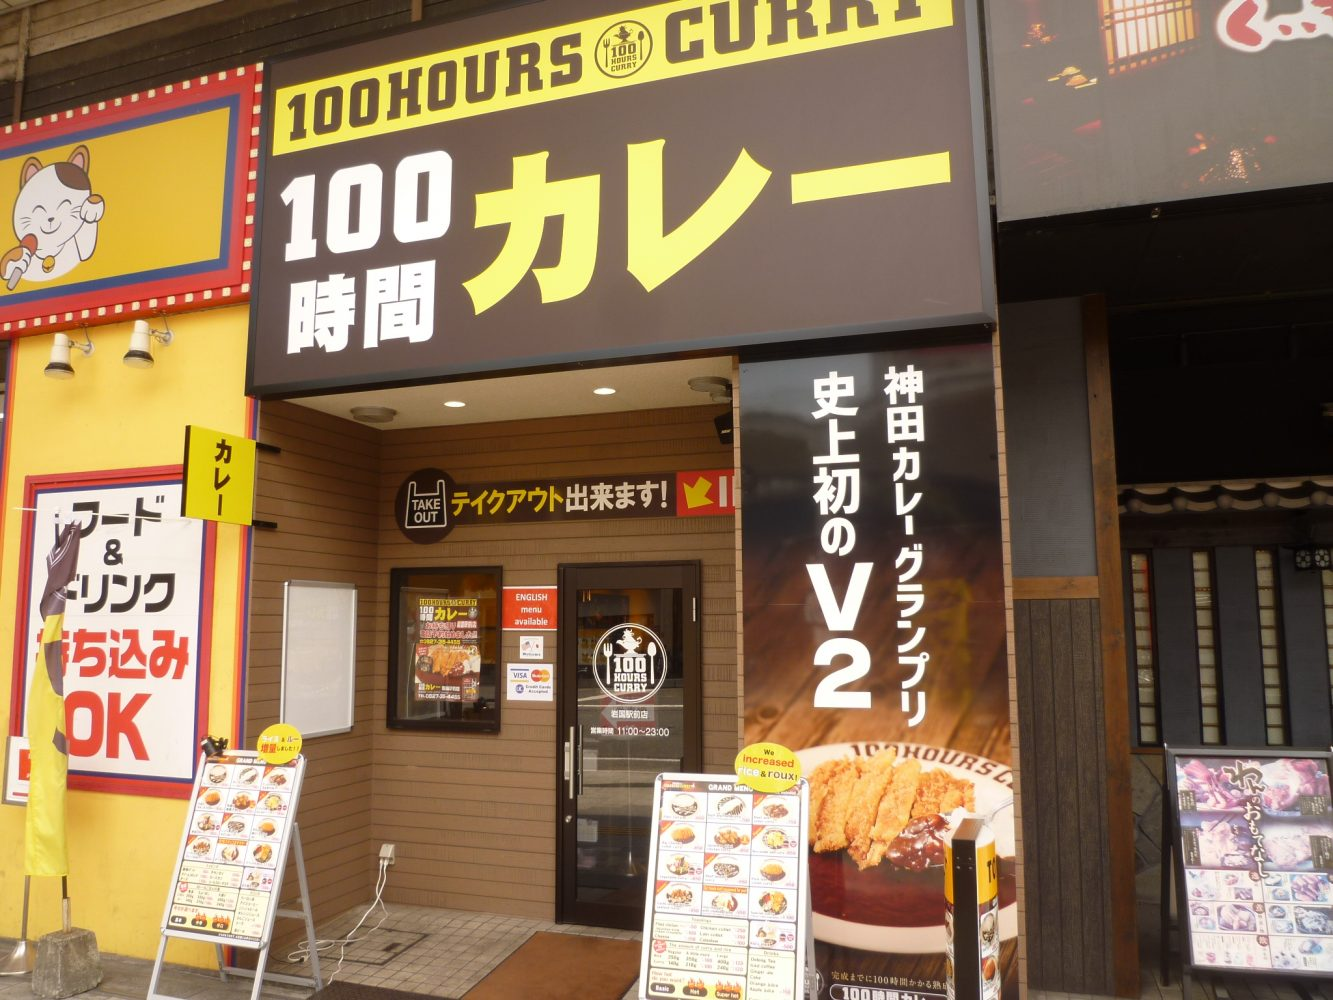 100HOURS CURRY – welcomesticker|IWAKUNI Store Search